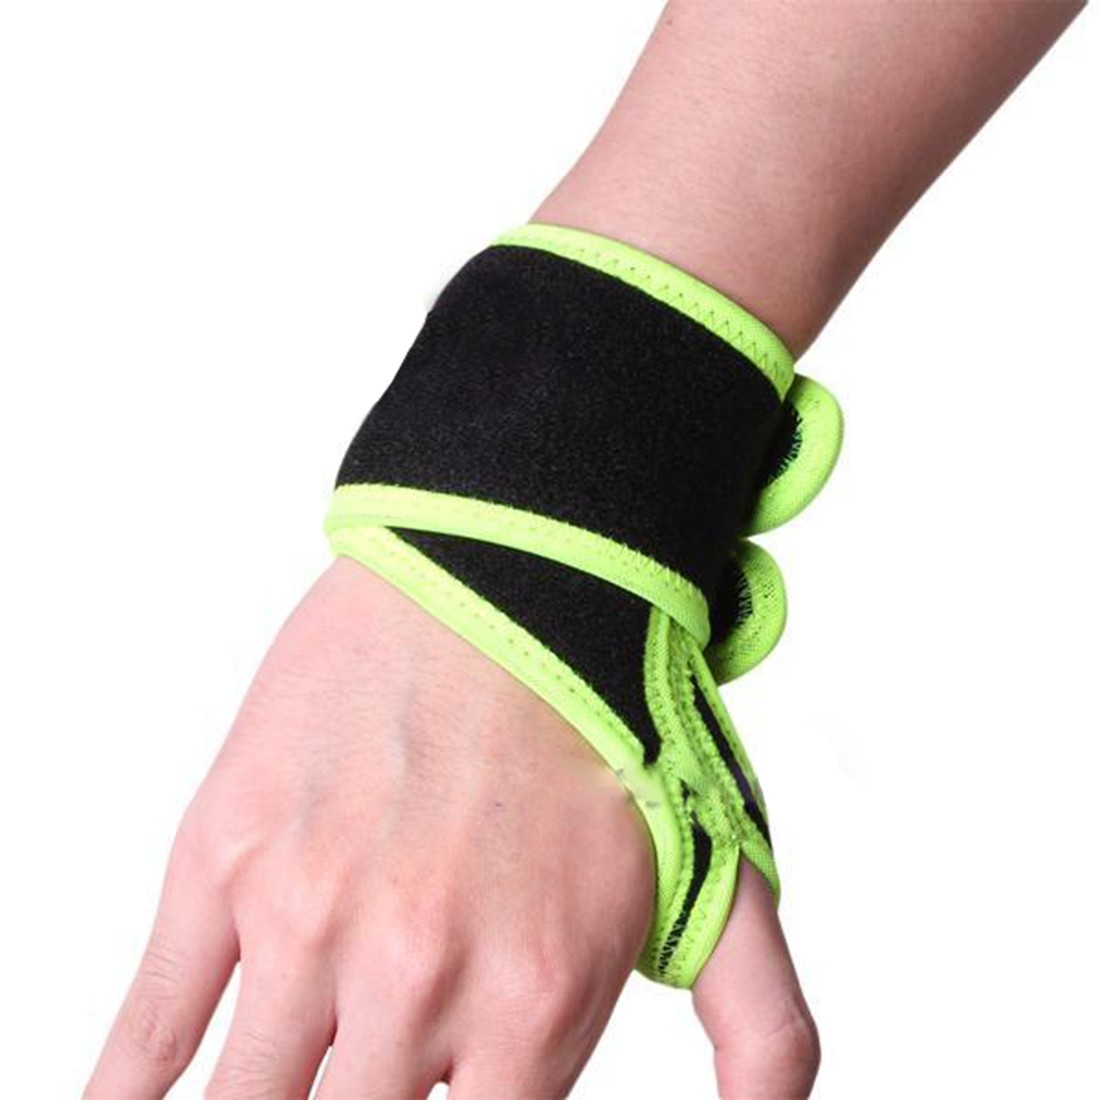 Hot Sell Reversible Sports Wrist Brace Wrist Support Wrap for Badminton Tennis Weightlifting